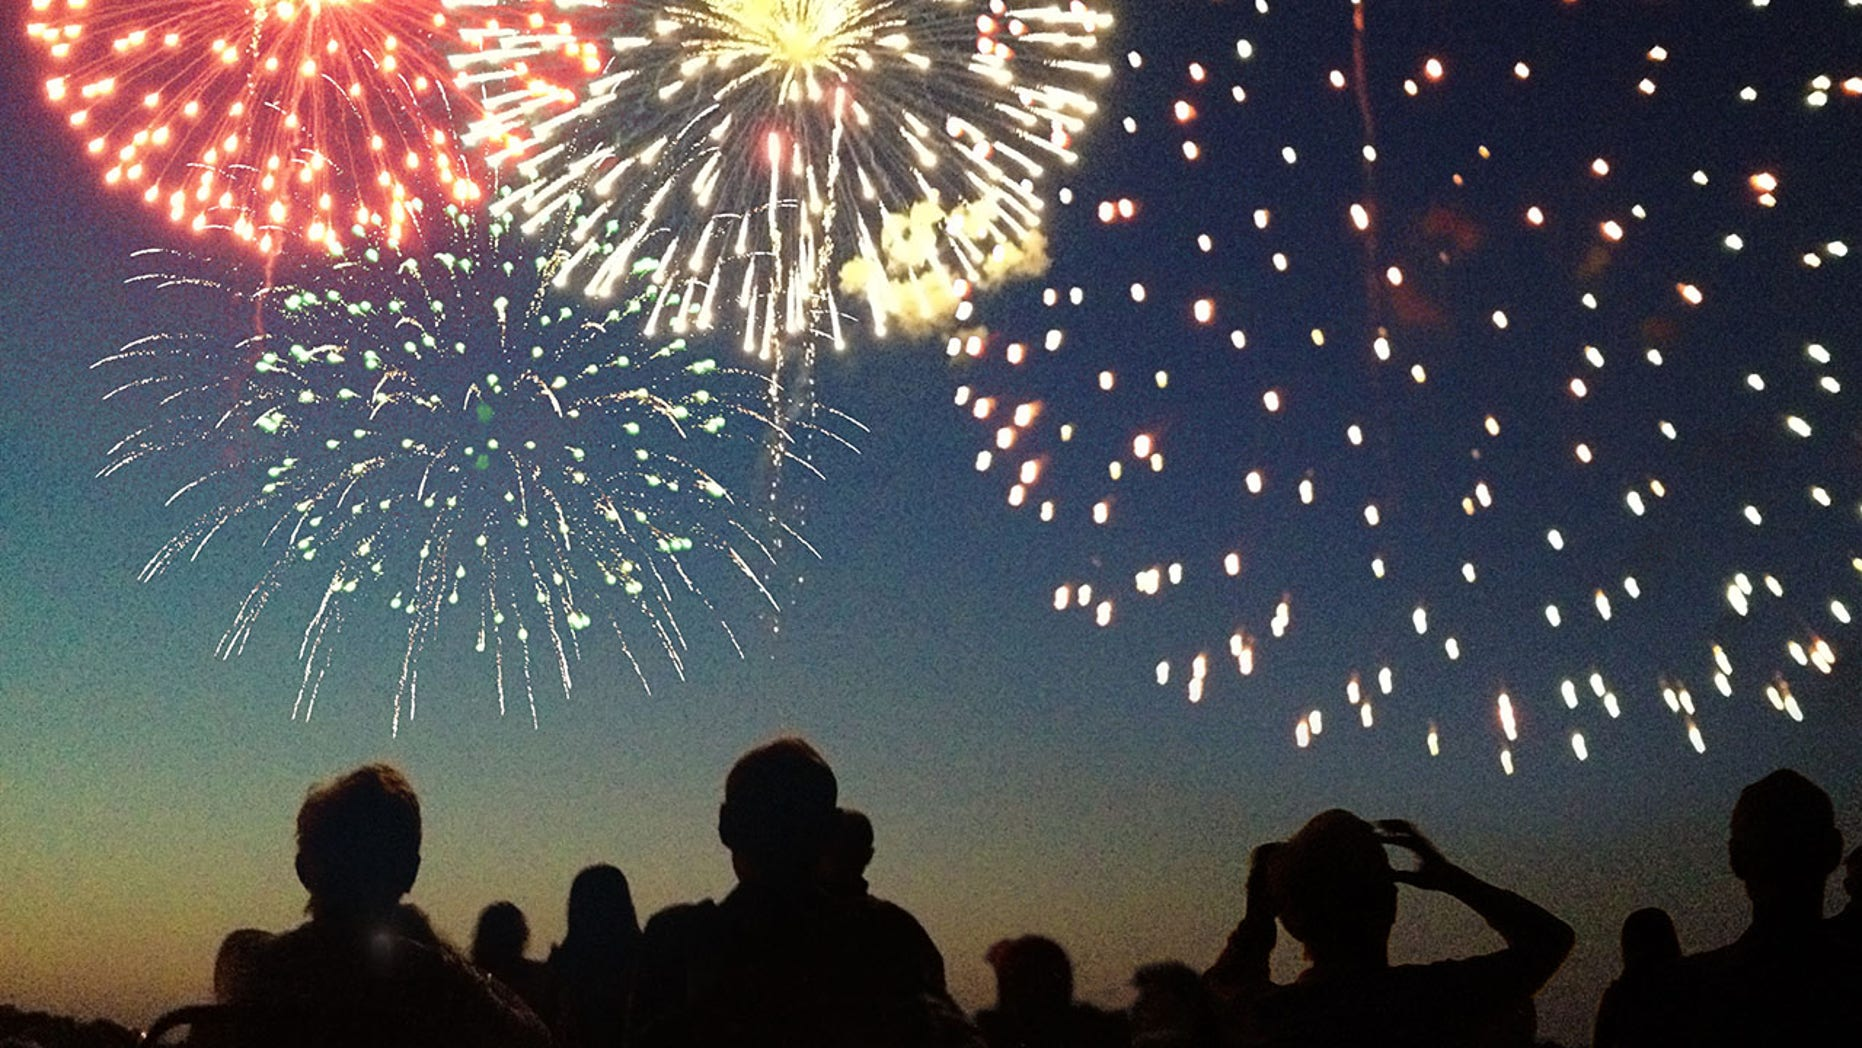 Fourth of July Fireworks Exploding Over Celebrating Spectators in Silhouette